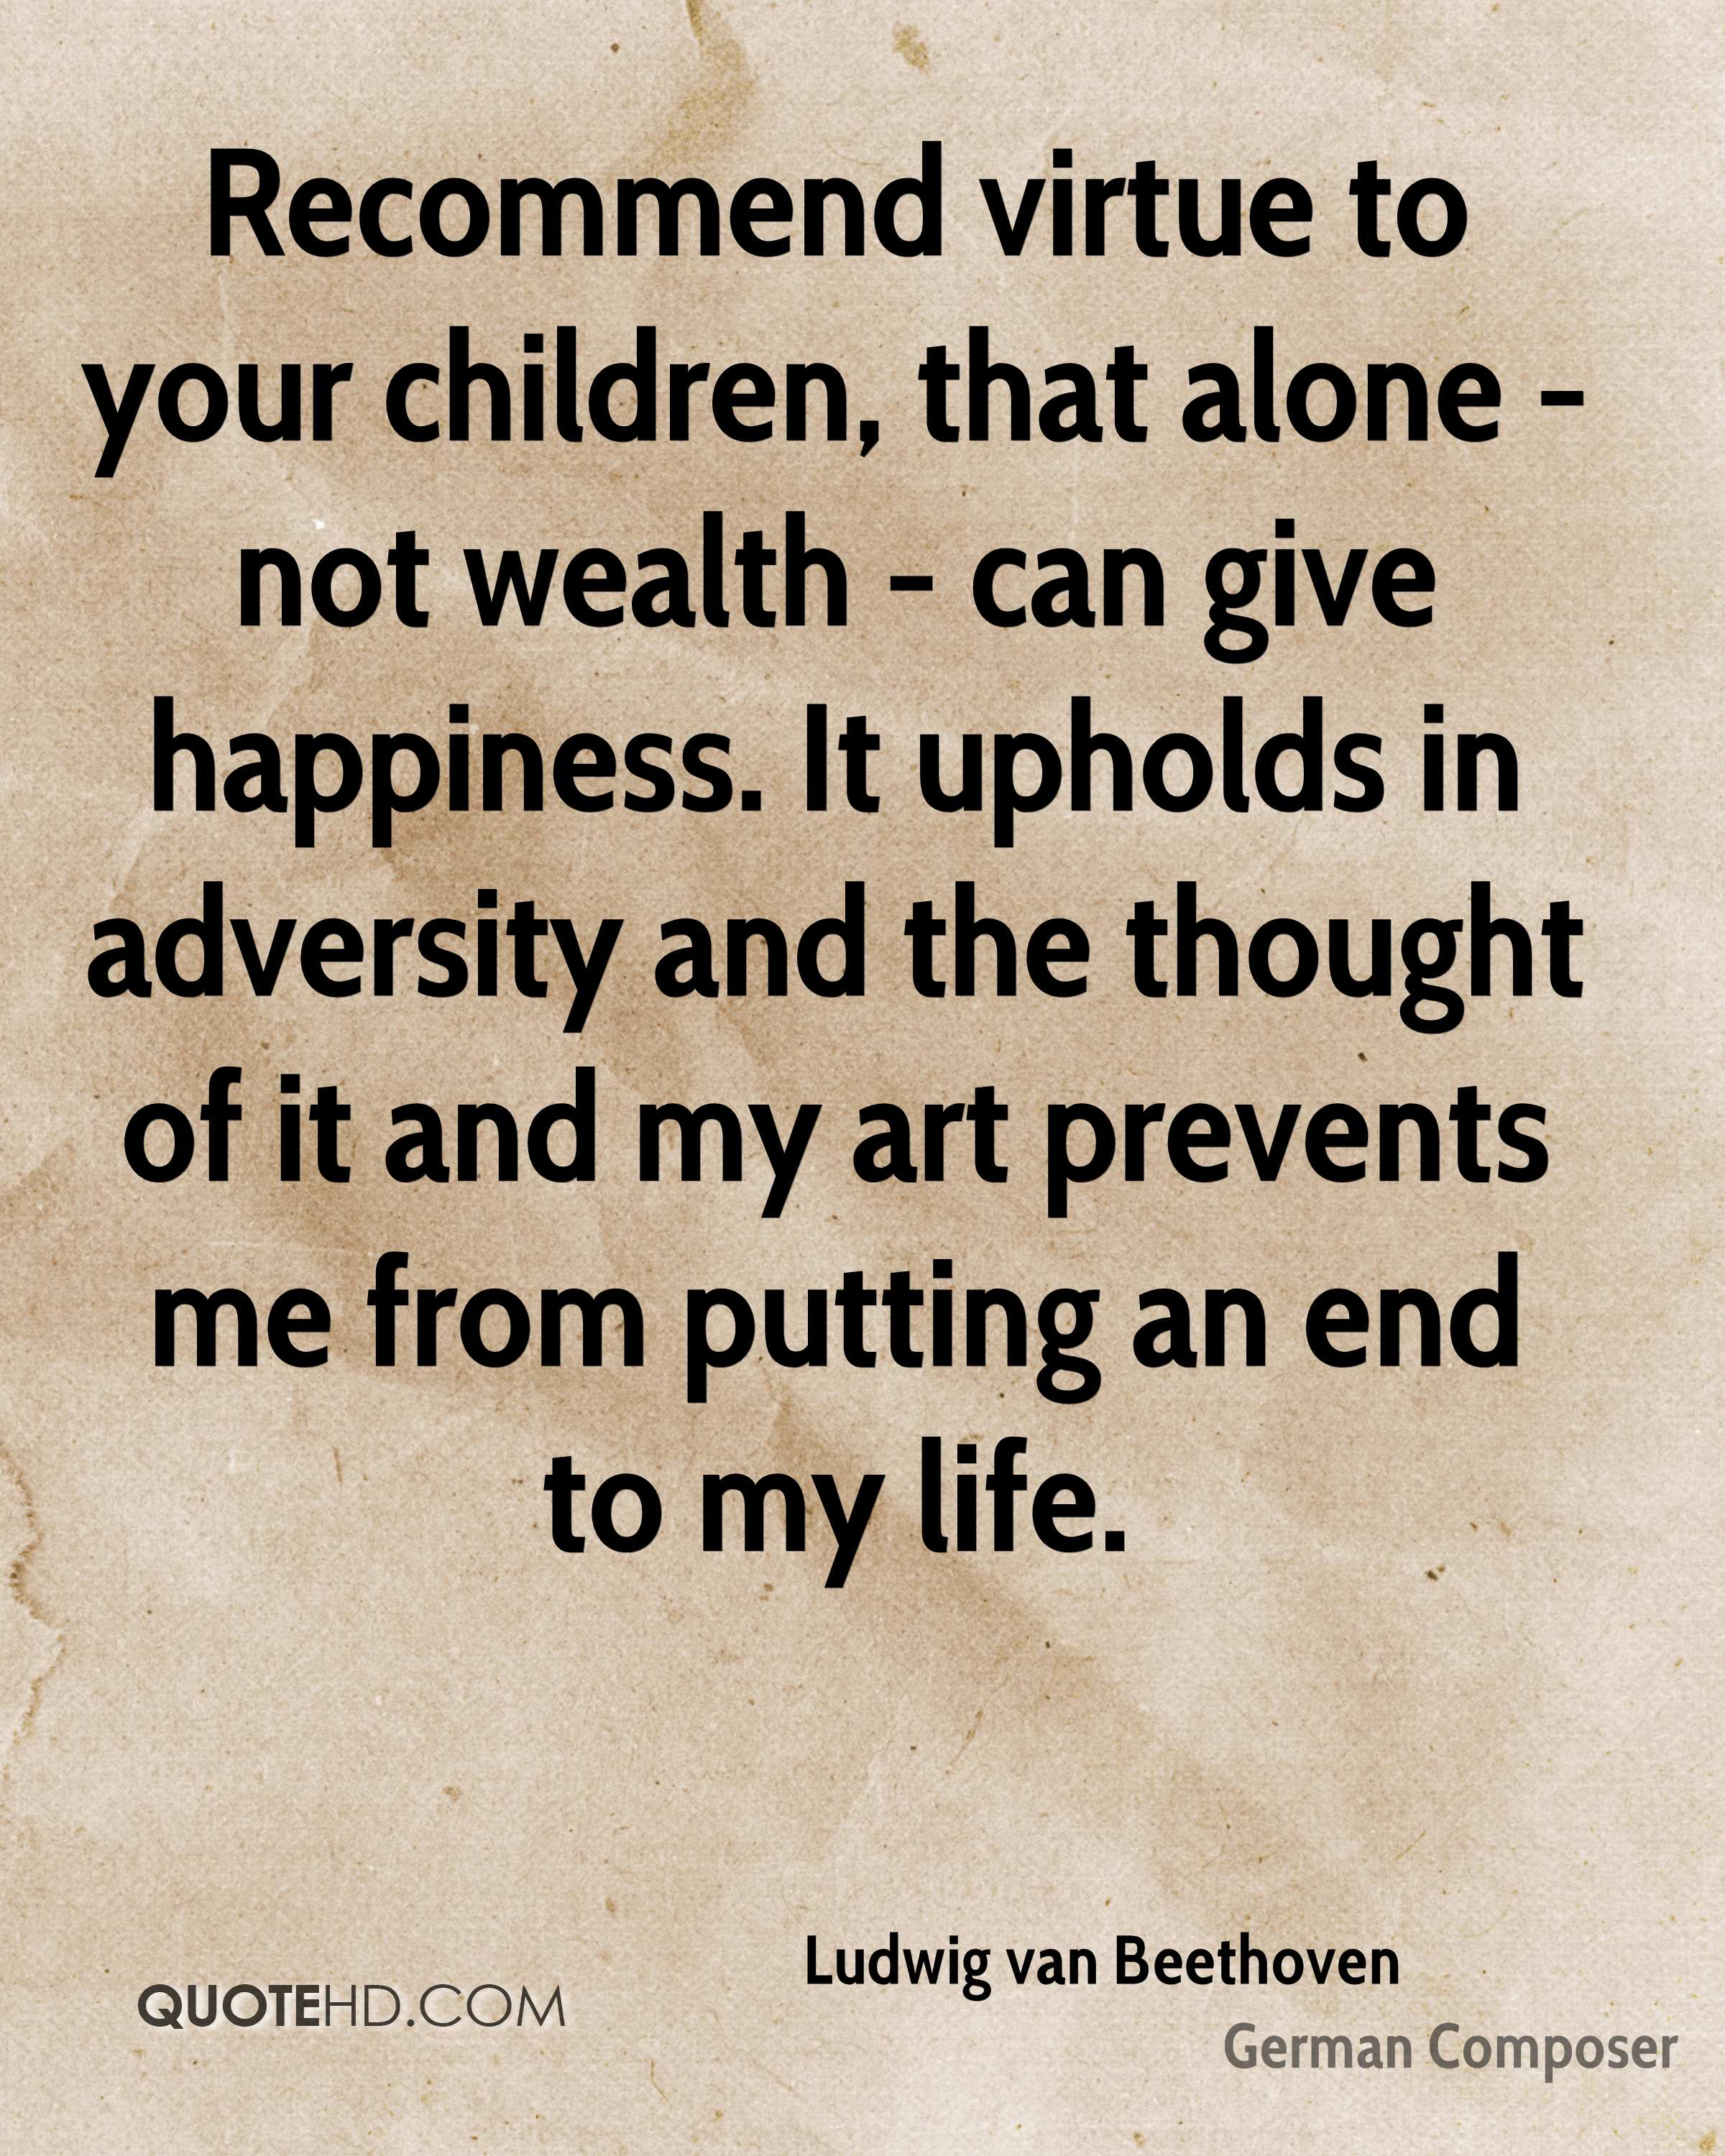 Recommend virtue to your children, that alone - not wealth - can give happiness. It upholds in adversity and the thought of it and my art prevents me from putting an end to my life.